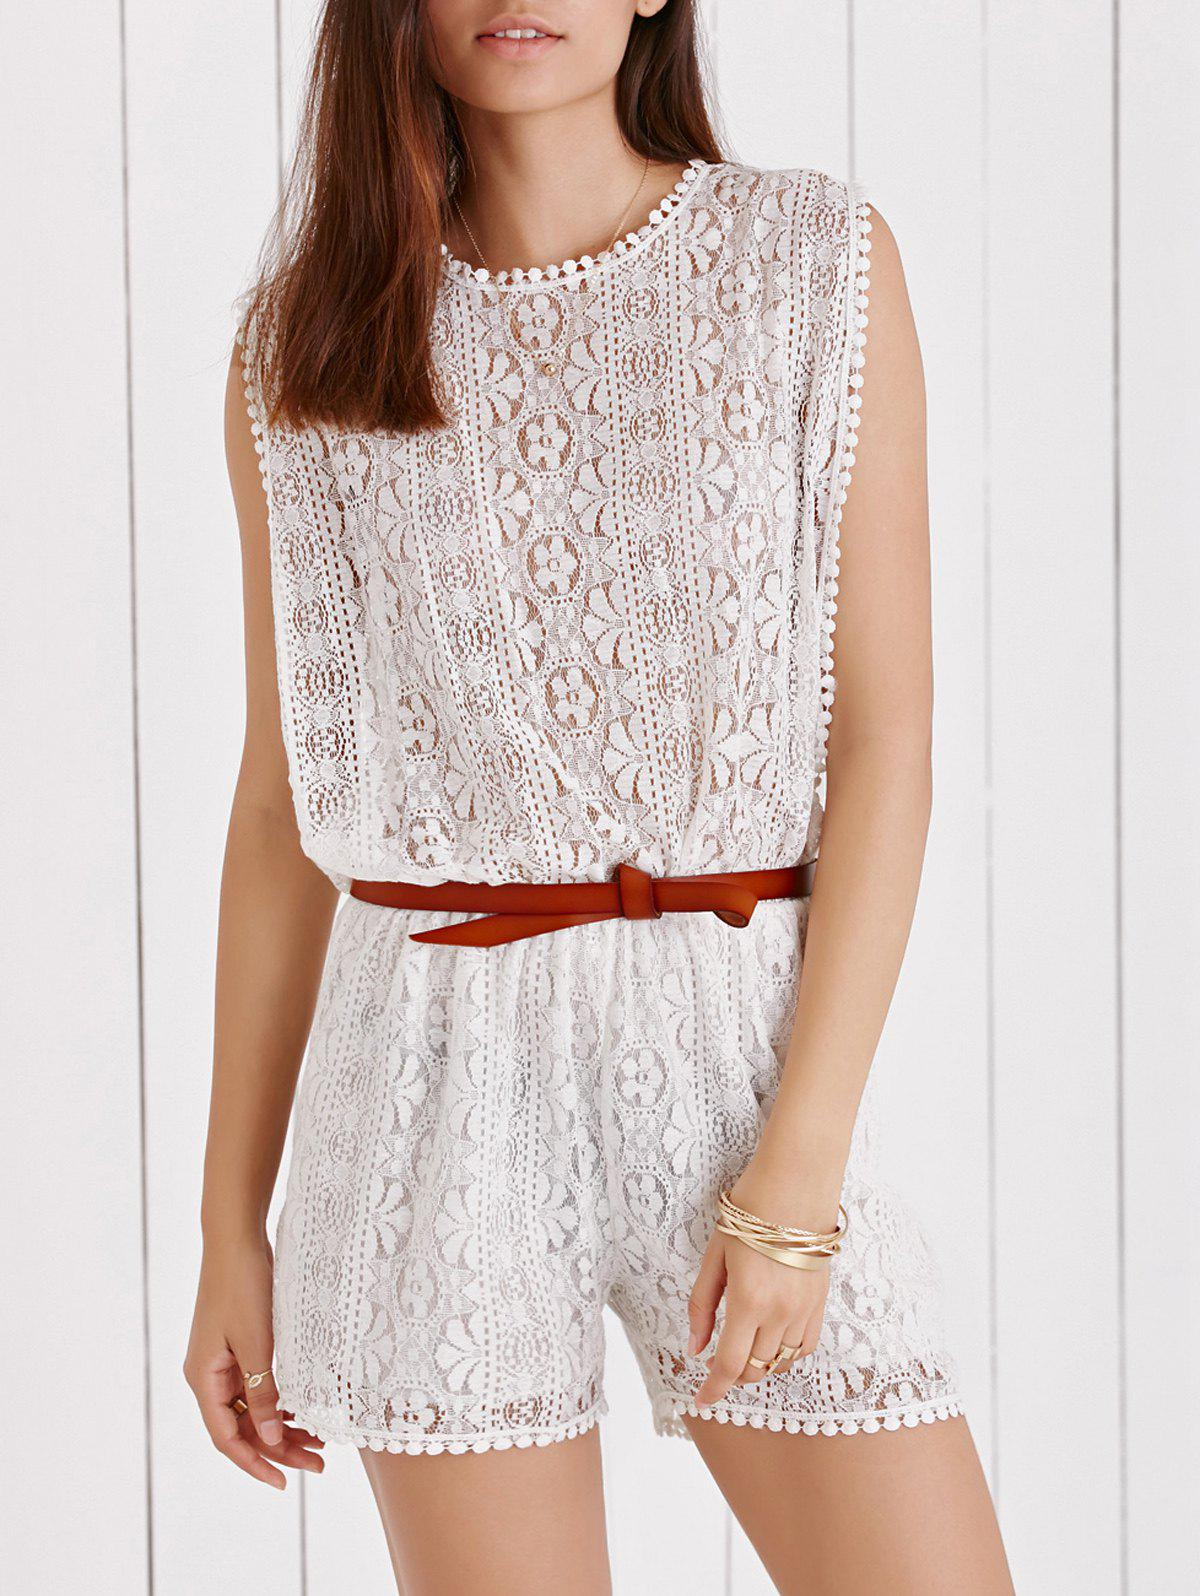 Elegant White Sleeveless Cut Out Side Boob Lace Romper For Women - WHITE XL